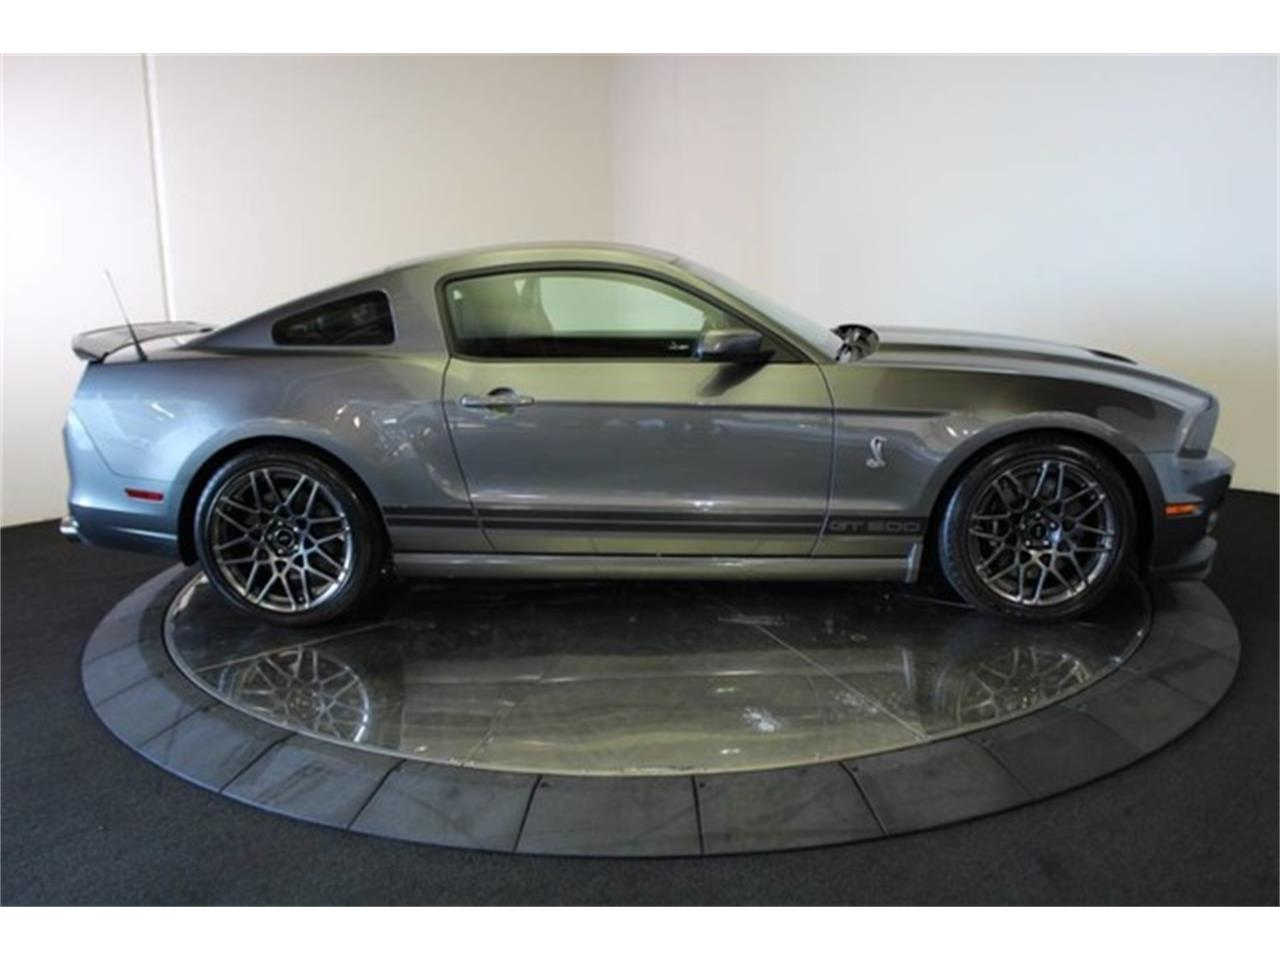 Large Picture of '13 Ford Mustang located in California - $51,900.00 - LCP6